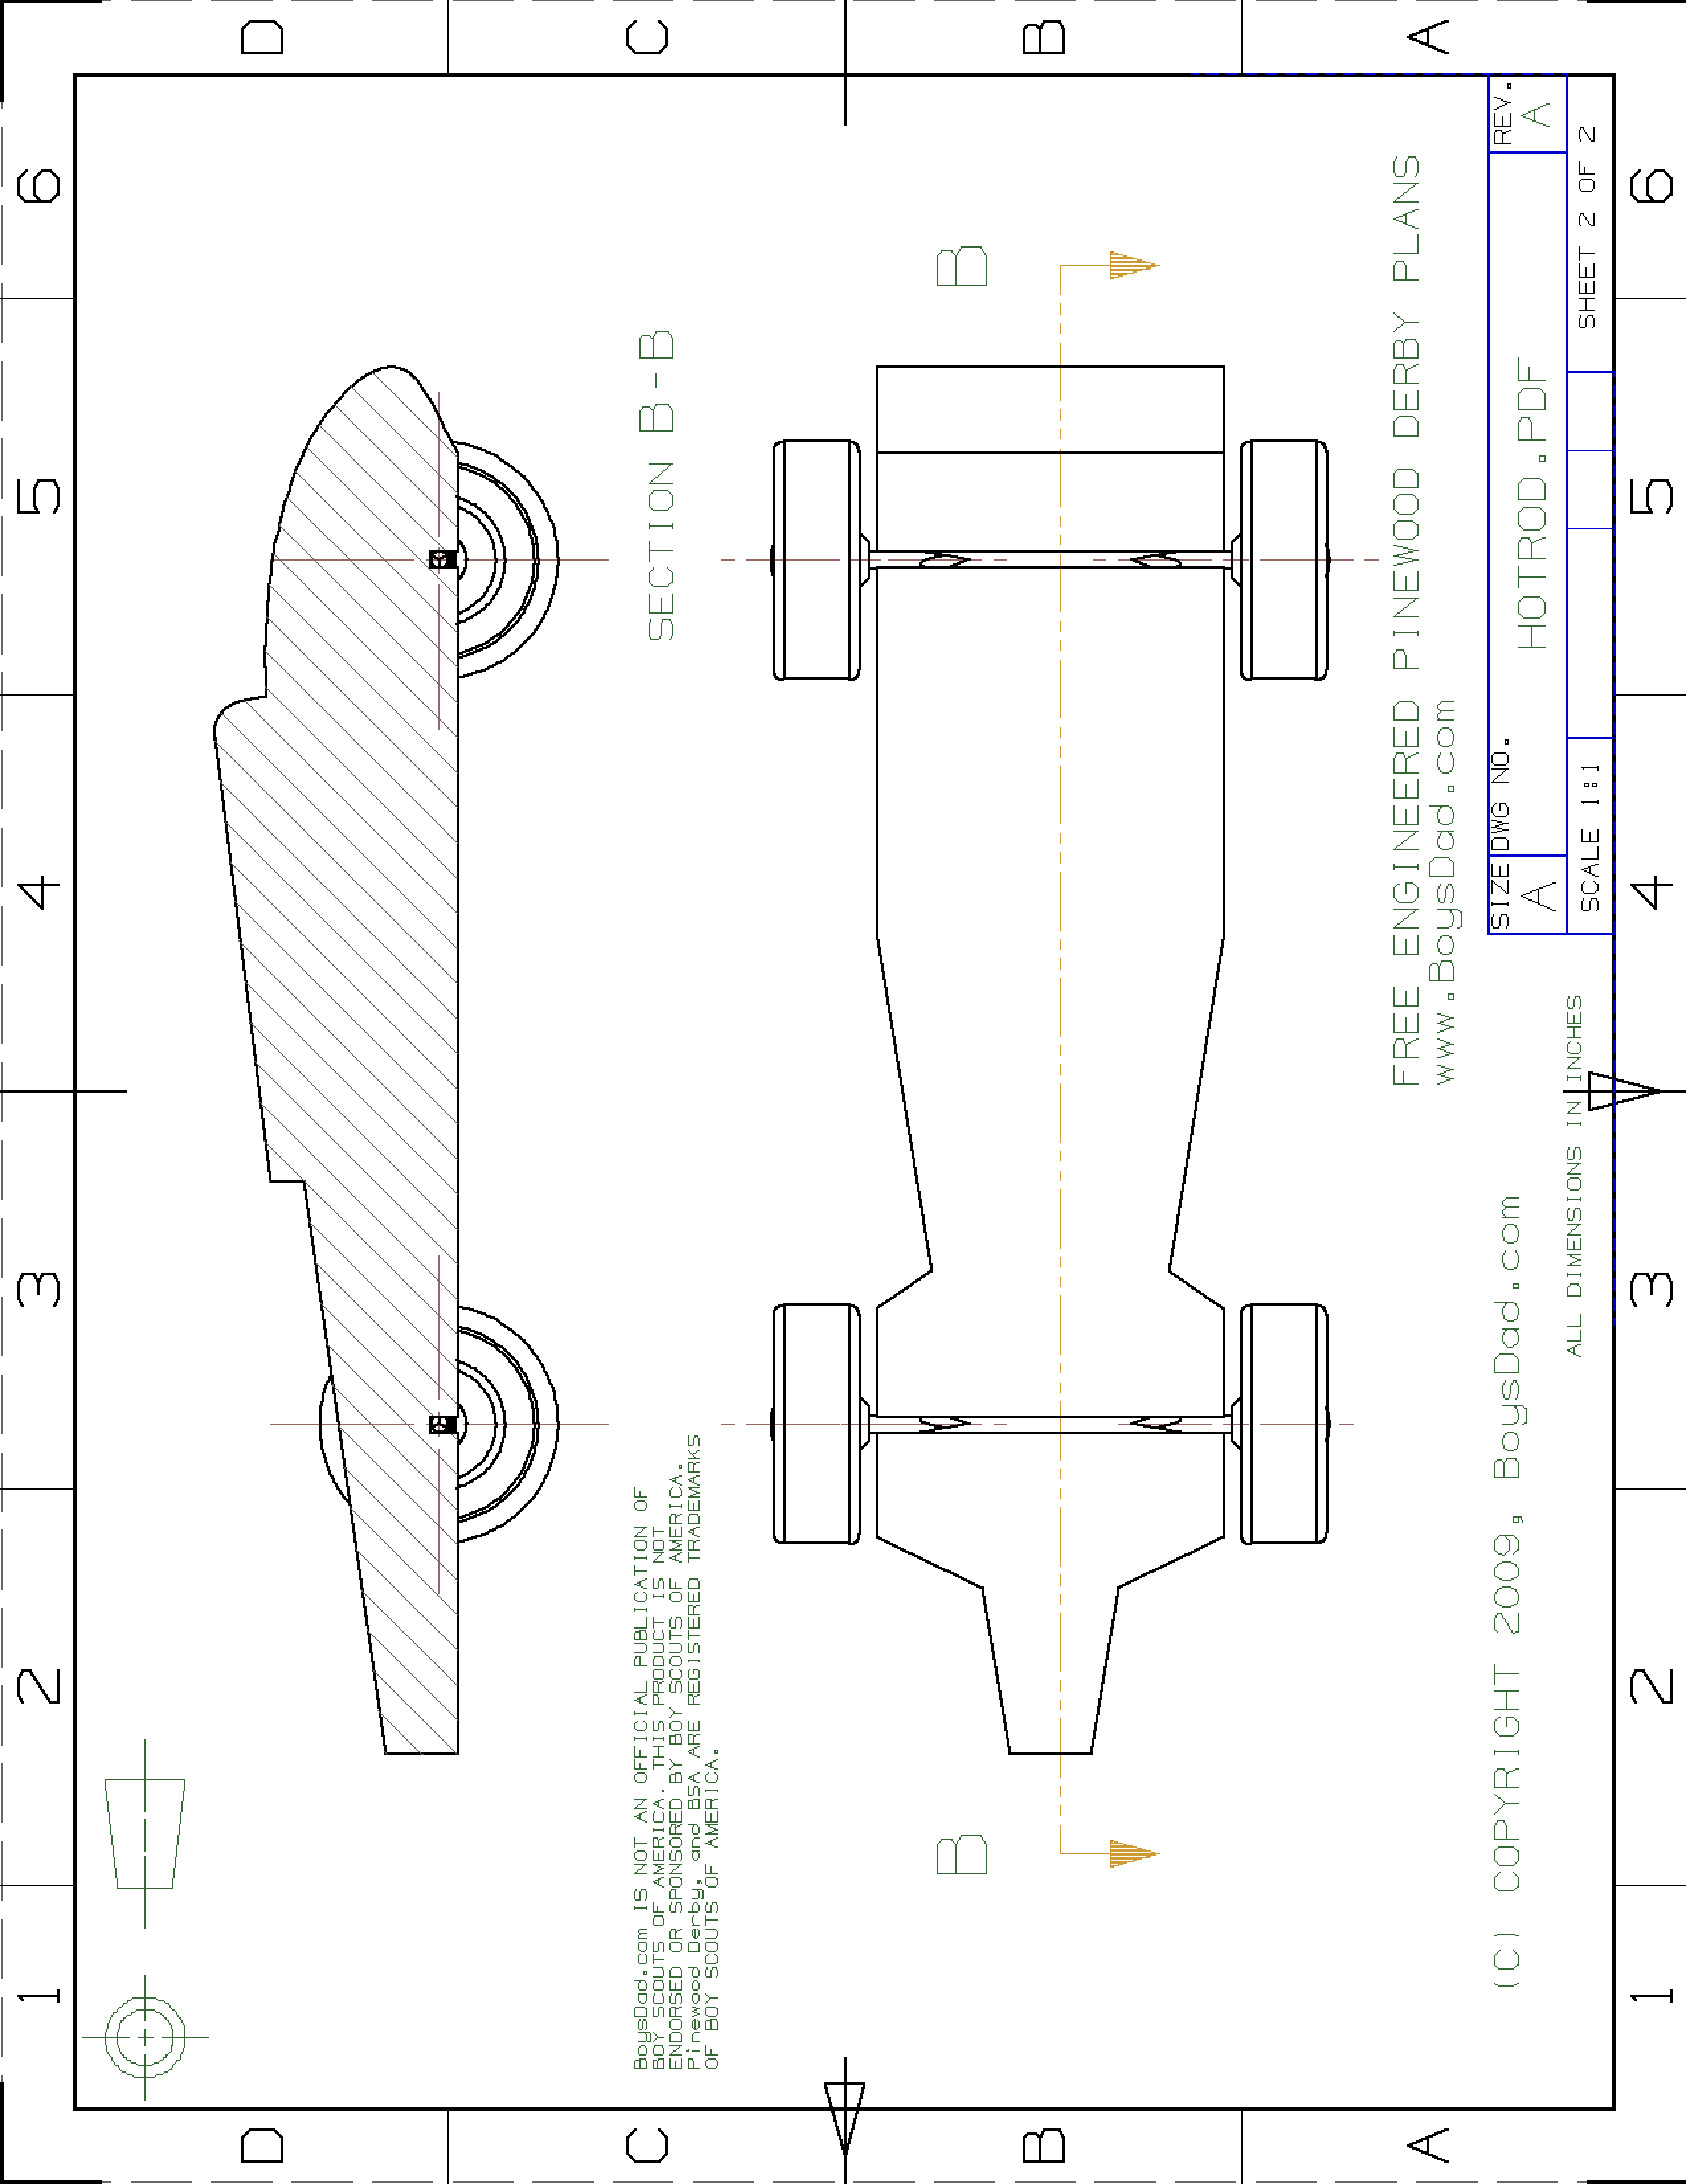 Free derby speed hot rod design template templates at for Formula 1 pinewood derby car template